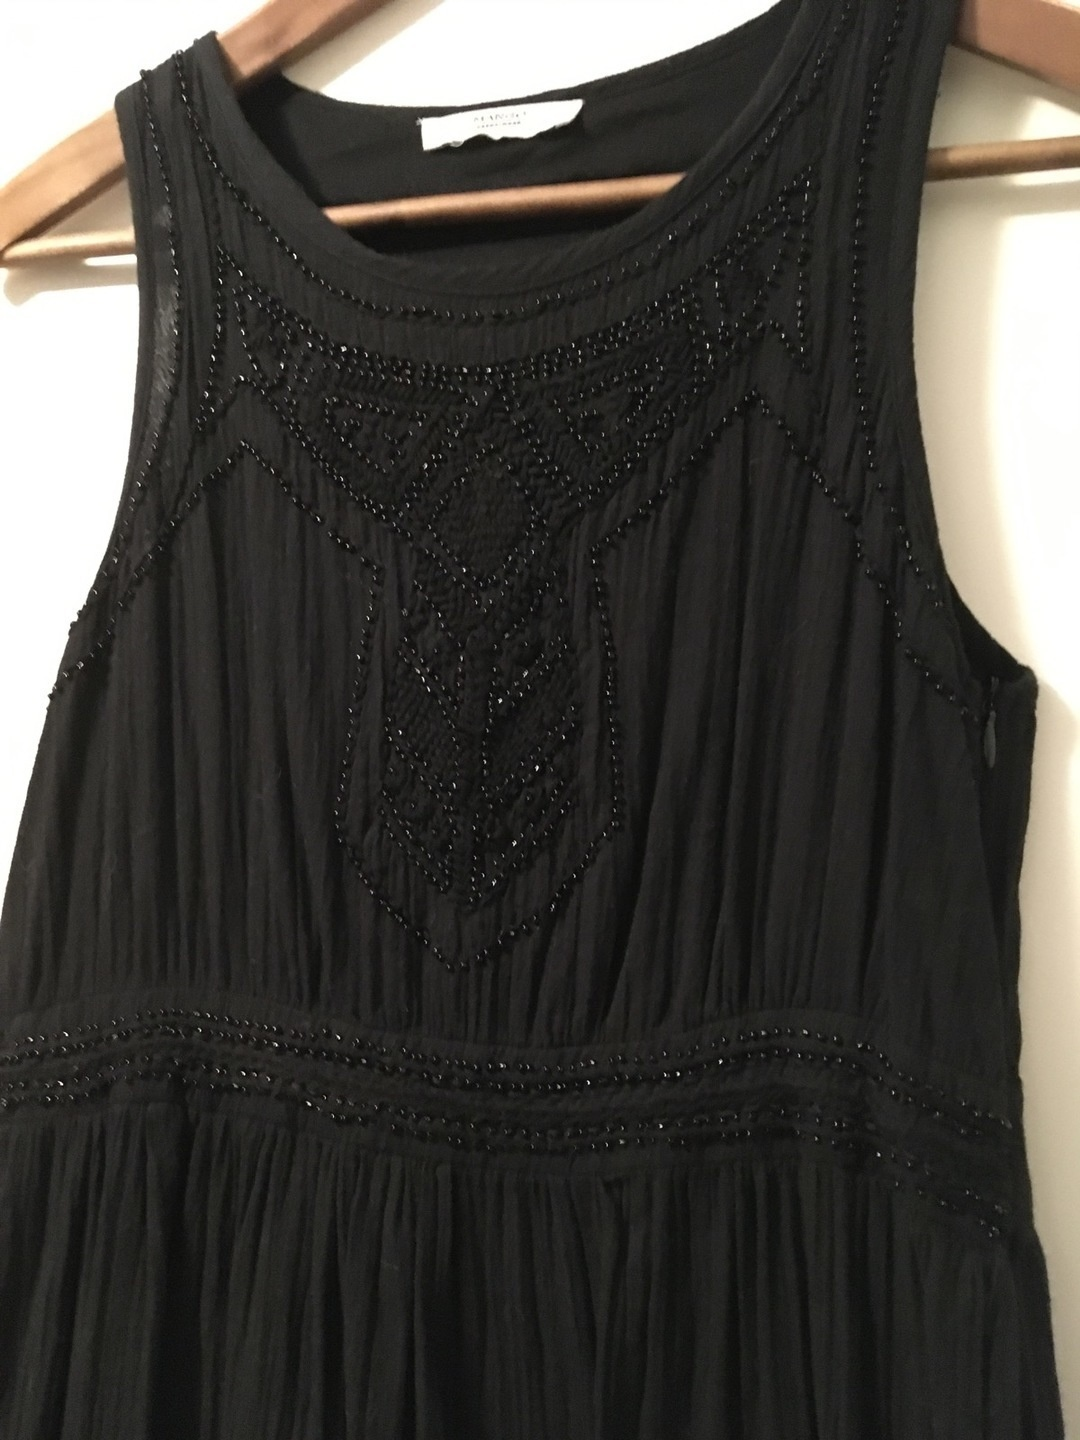 Women's dresses - MANGO photo 1